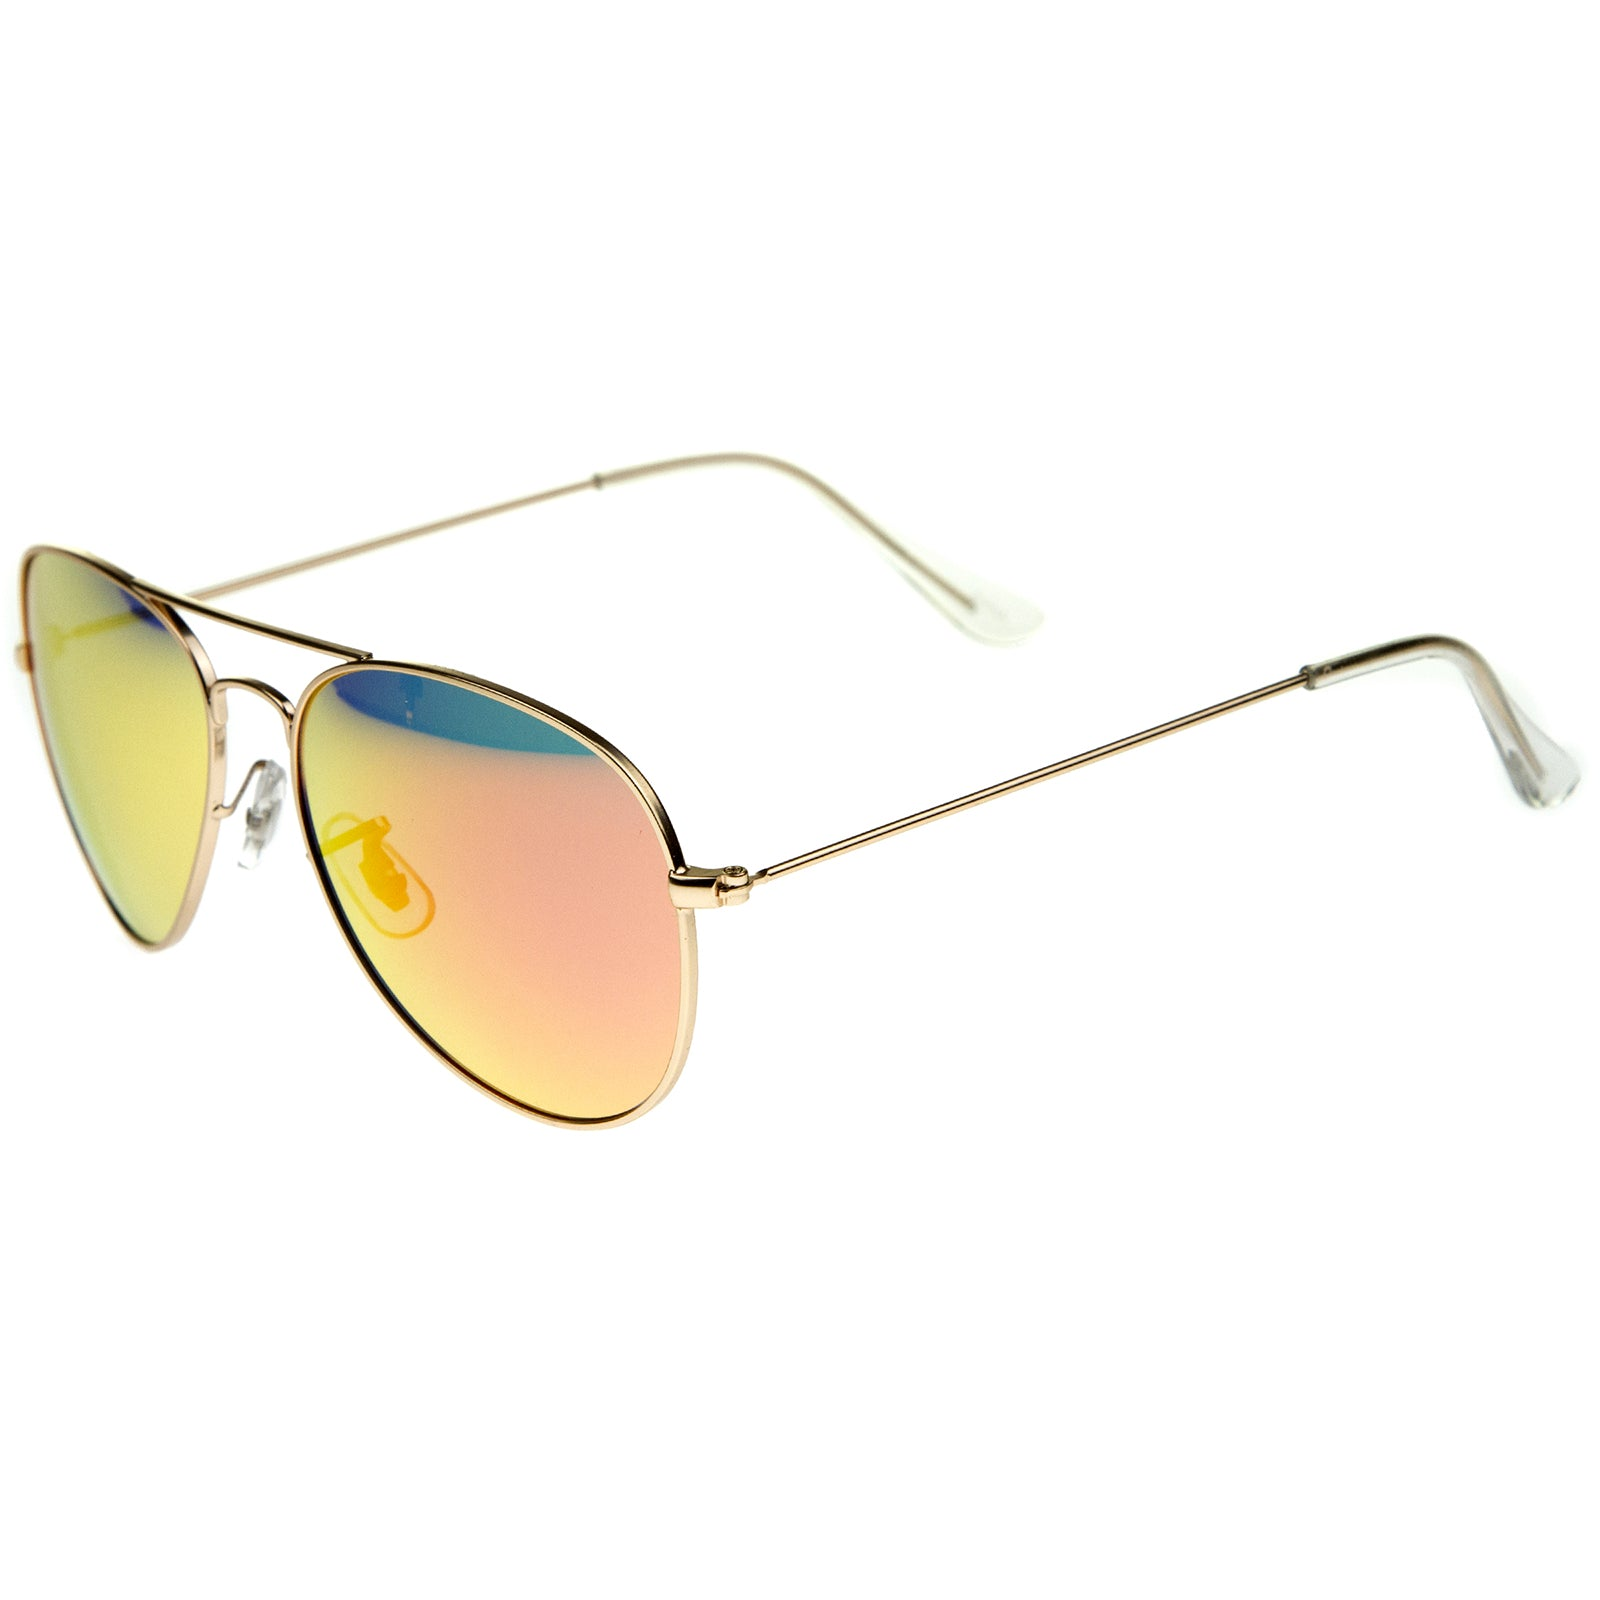 Premium Nickel Plated Frame Multi-Coated Mirror Lens Aviator Sunglasses 59mm - sunglass.la - 7